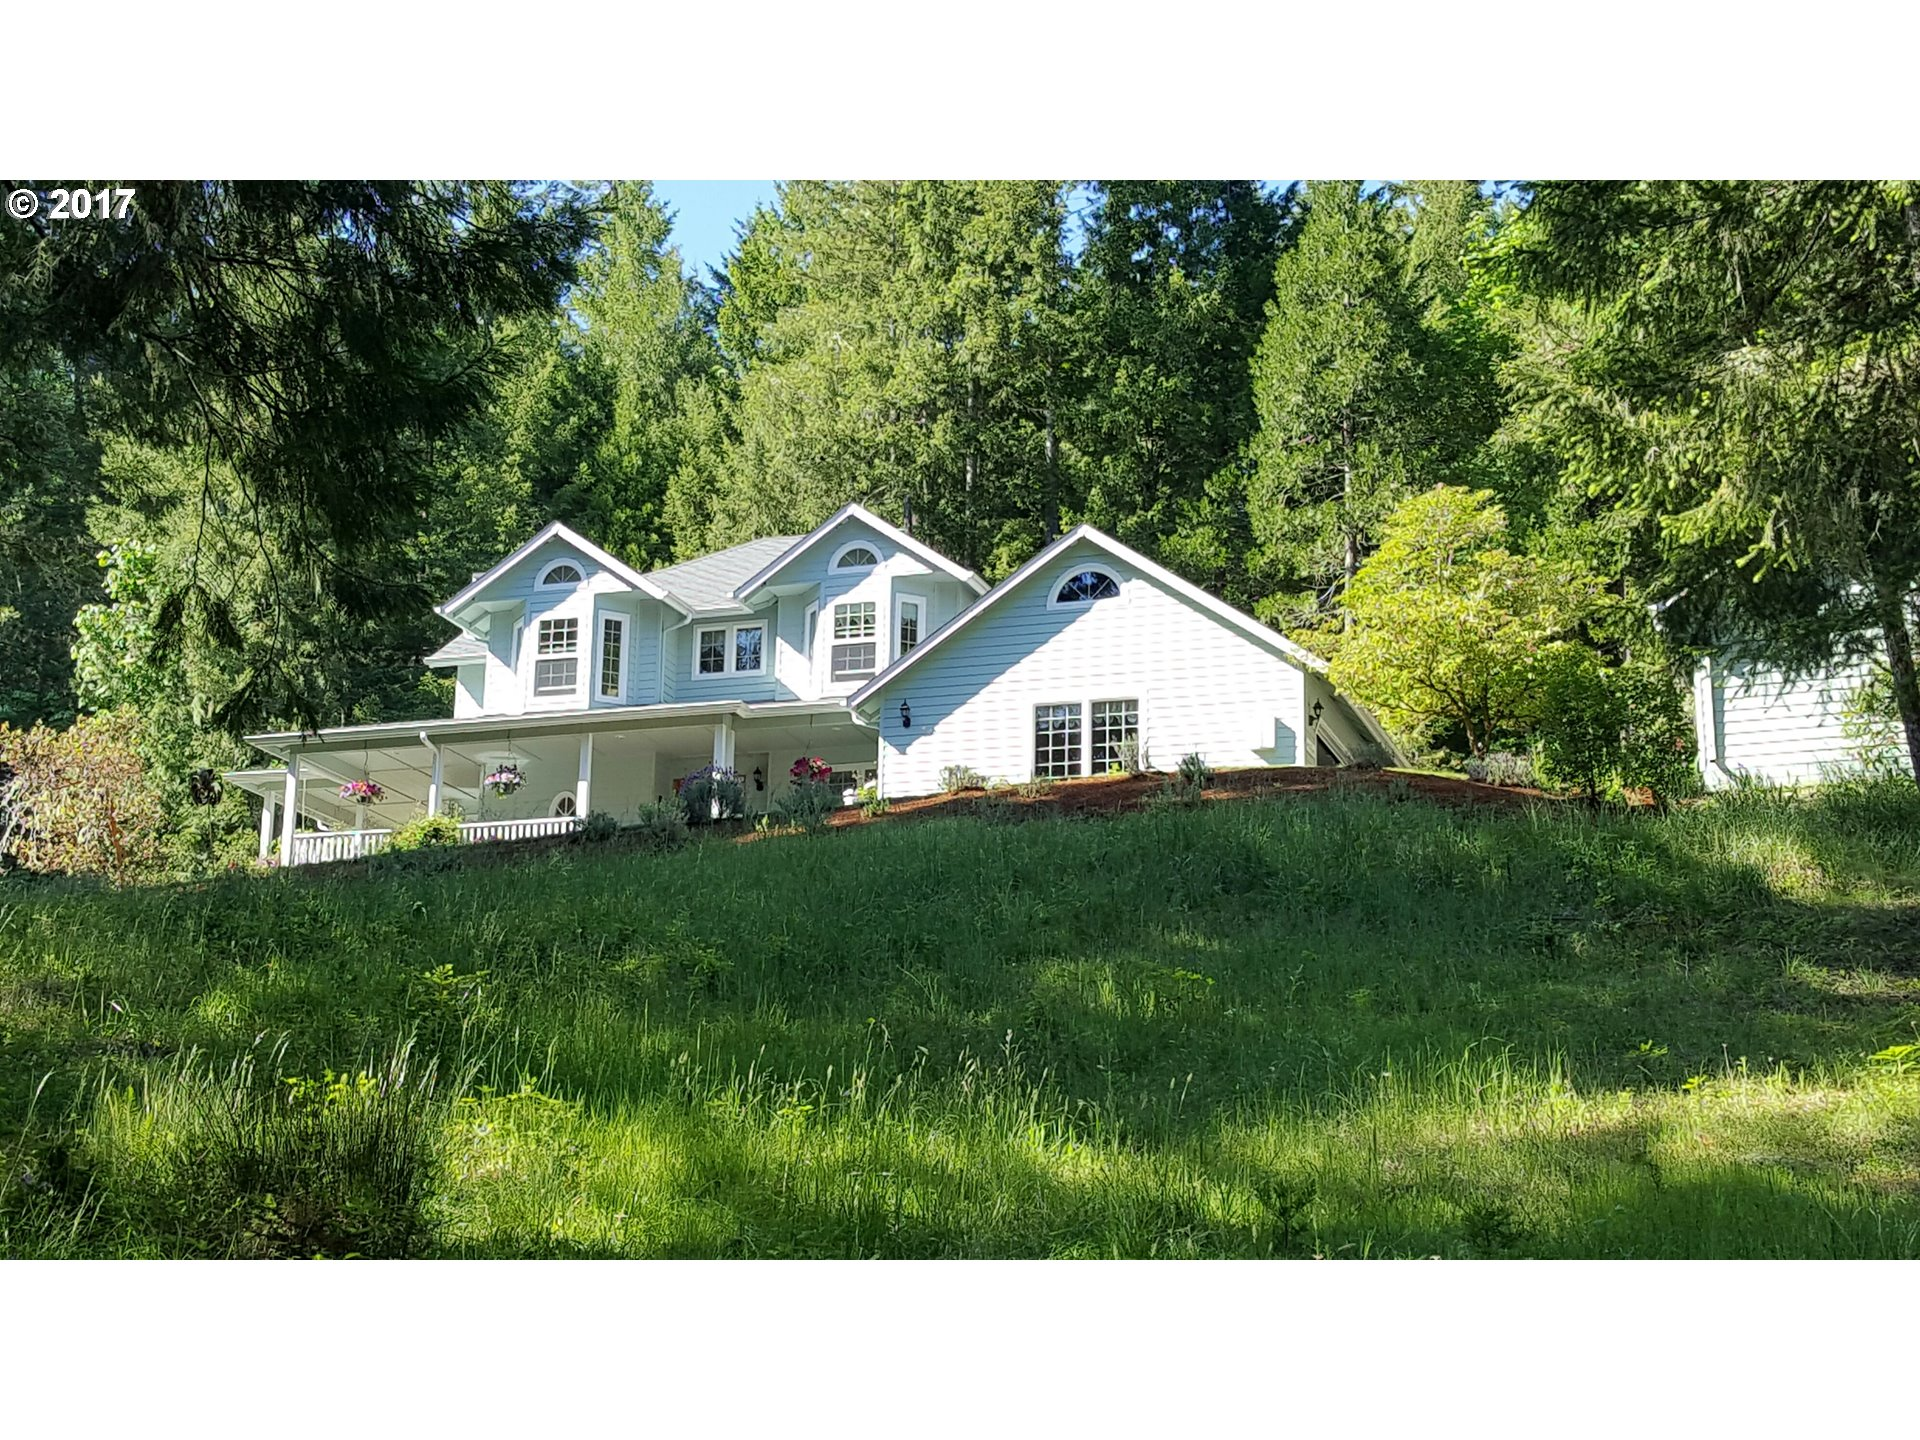 32507 WILSON CREEK RD, Cottage Grove, OR 97424